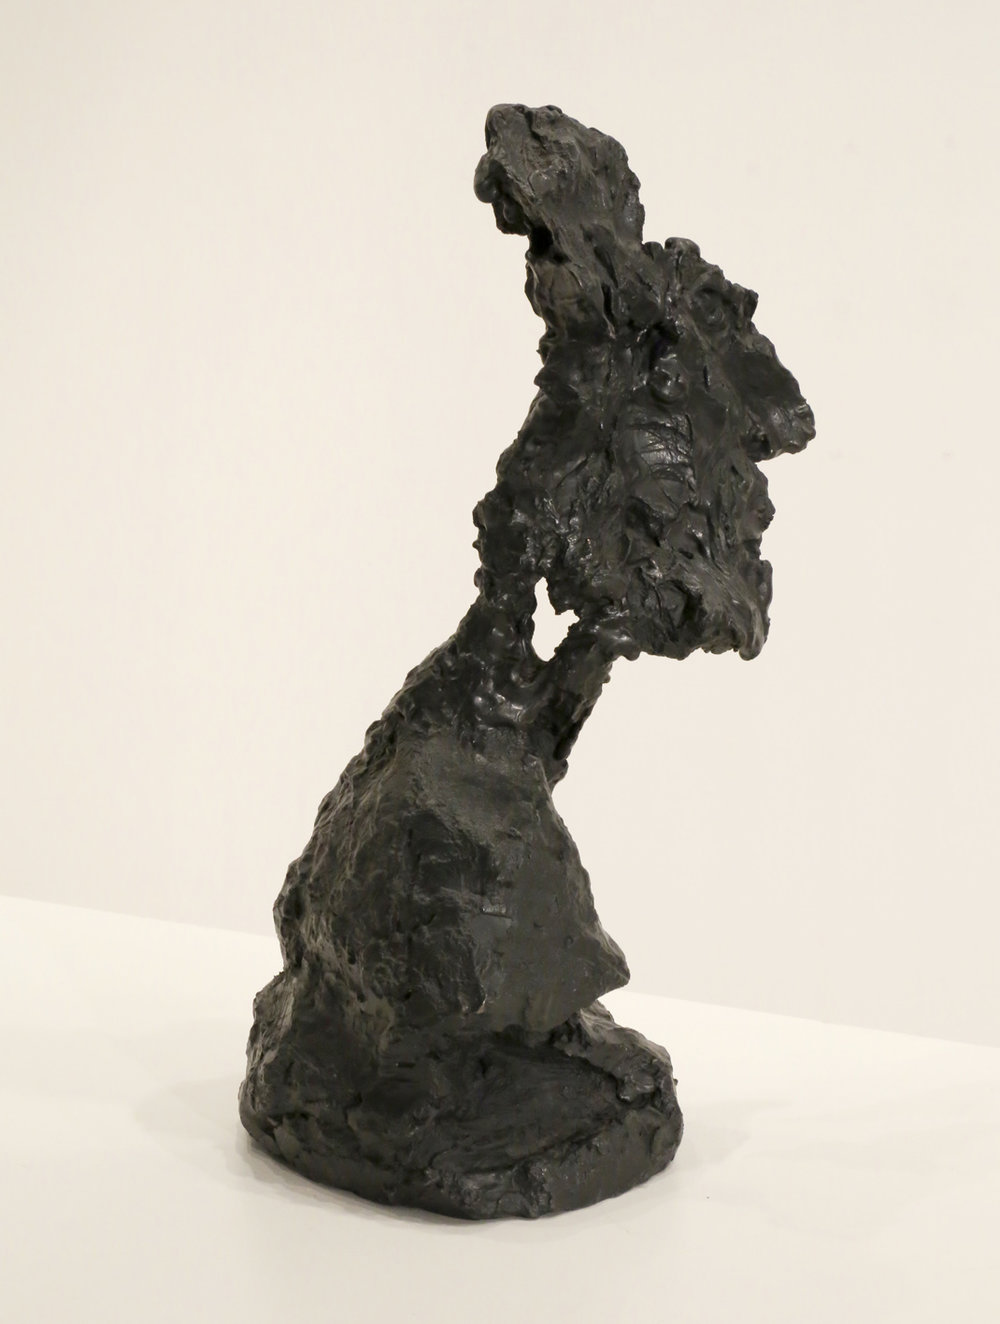 Kevin Connor   Head III , 2000  bronze, edition 5 of 5  35 x 14 x 20 cm